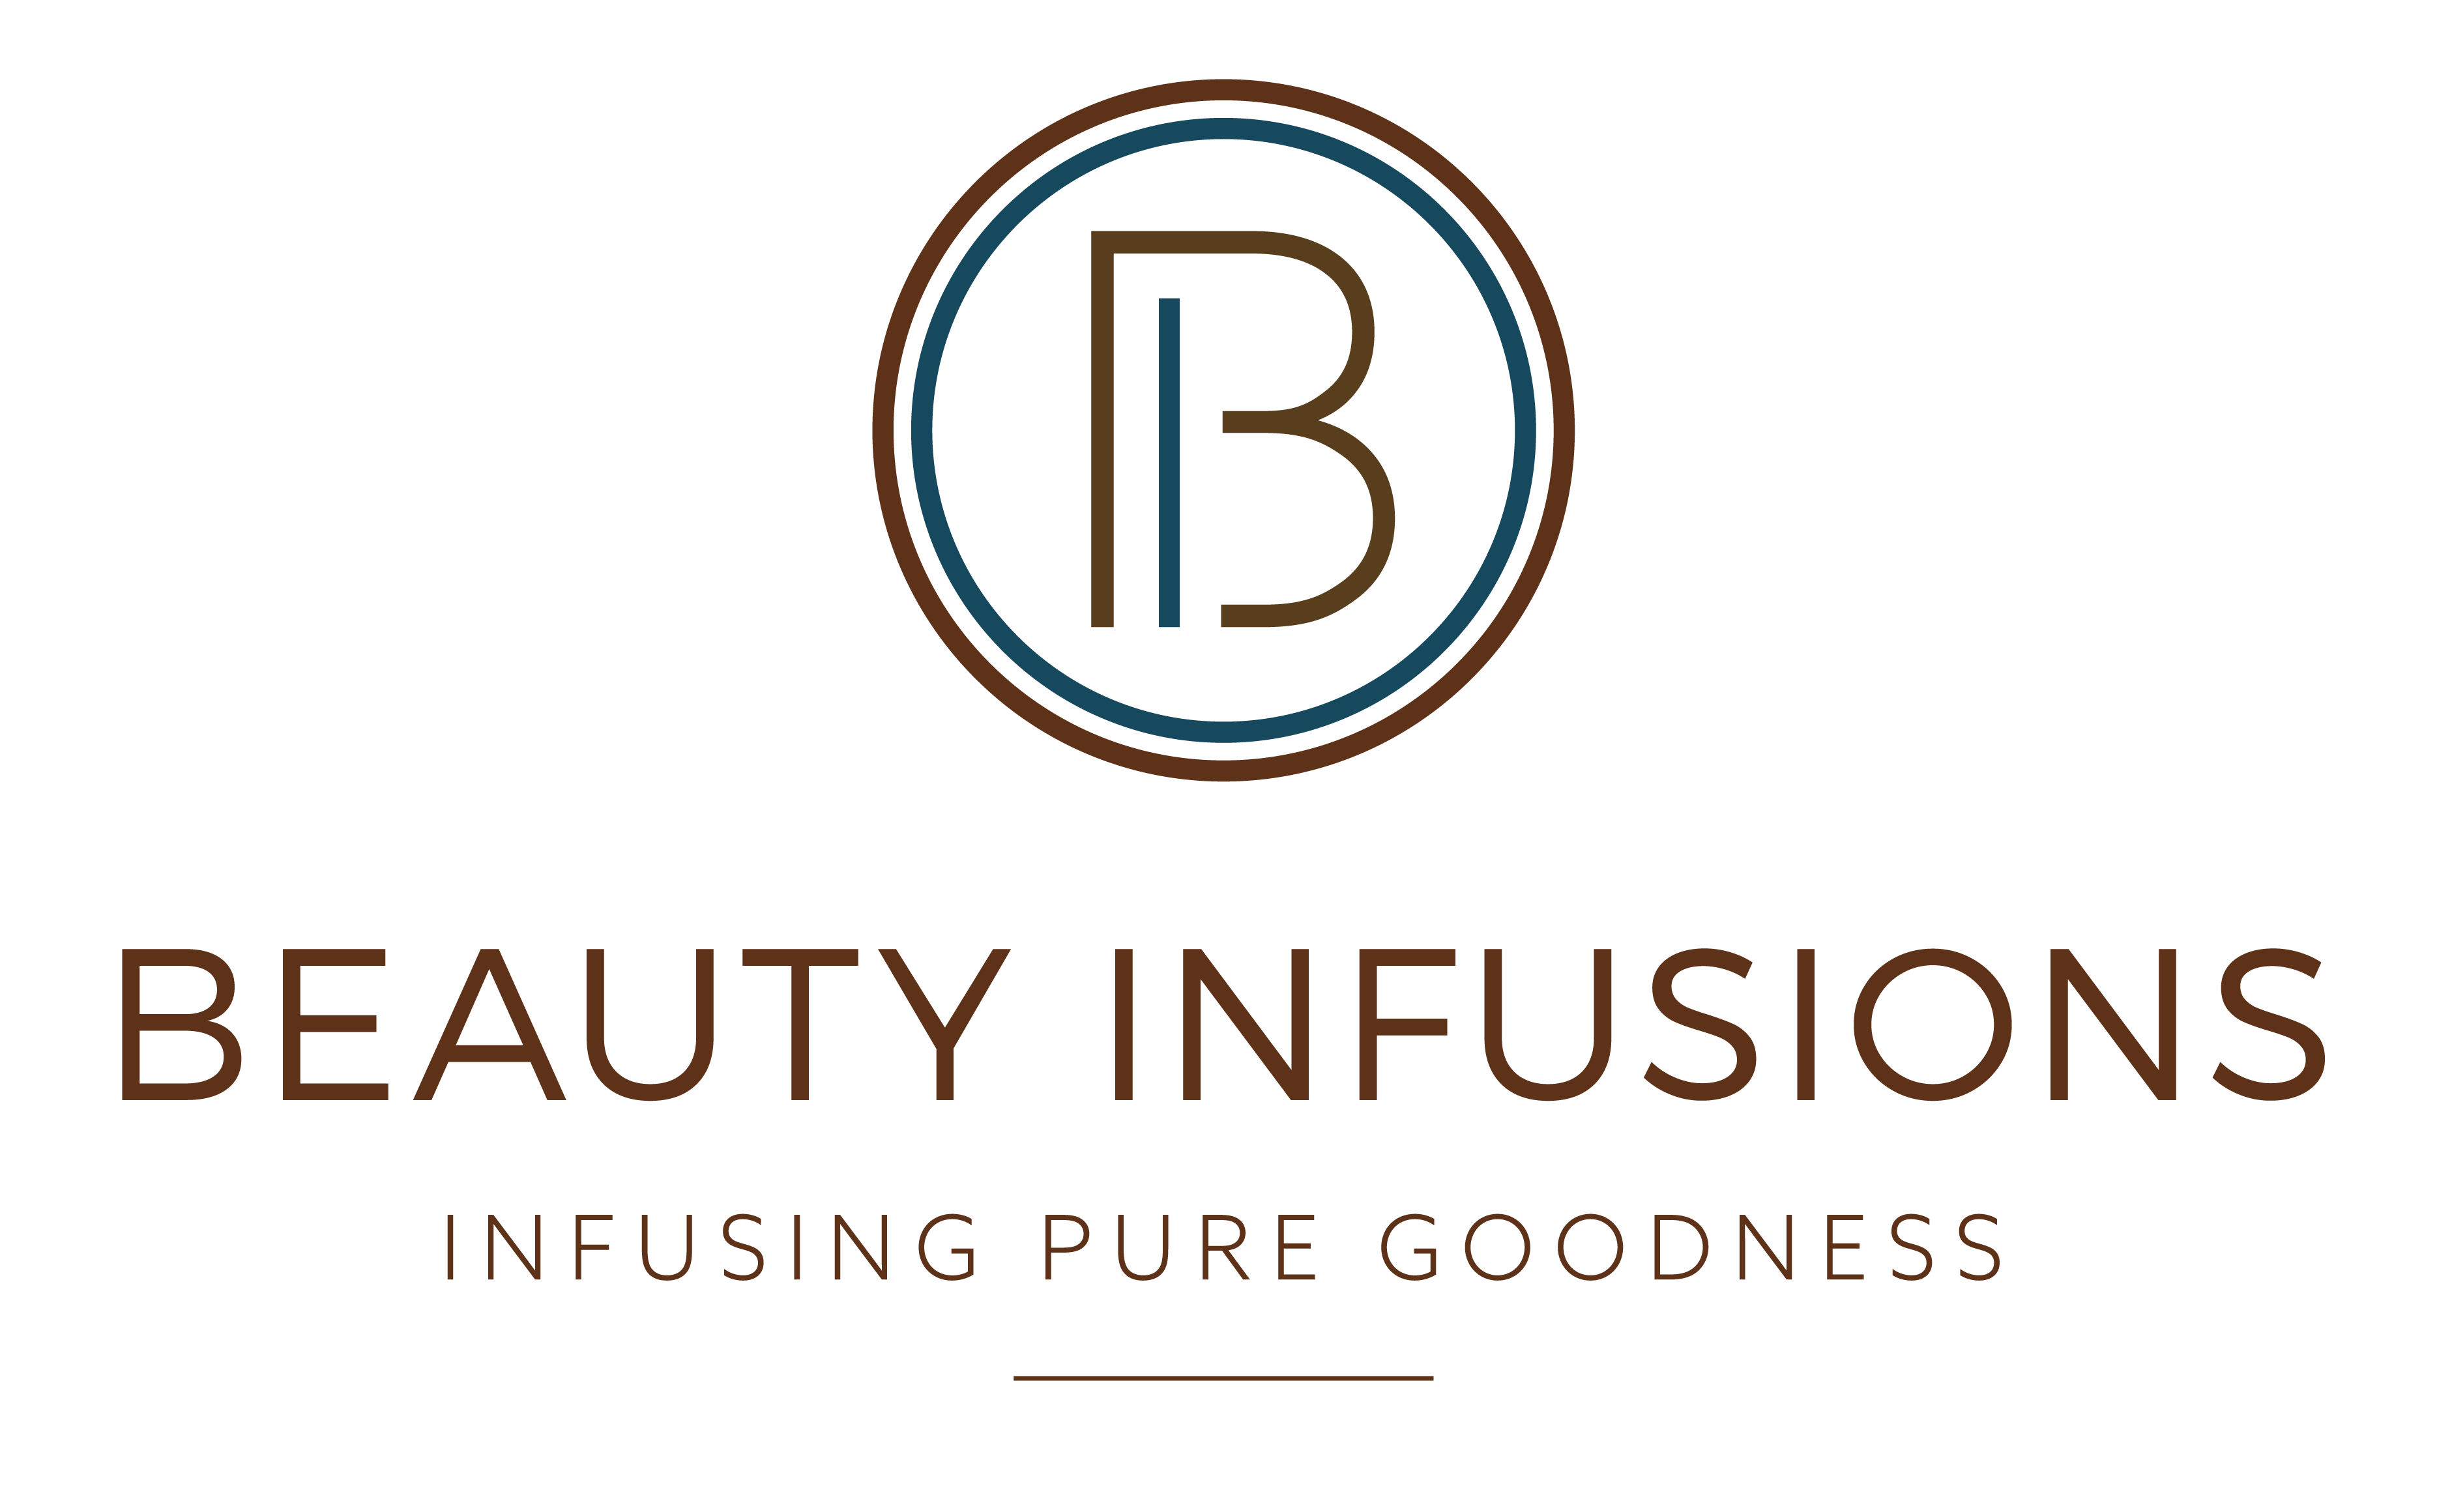 Beauty Infusions